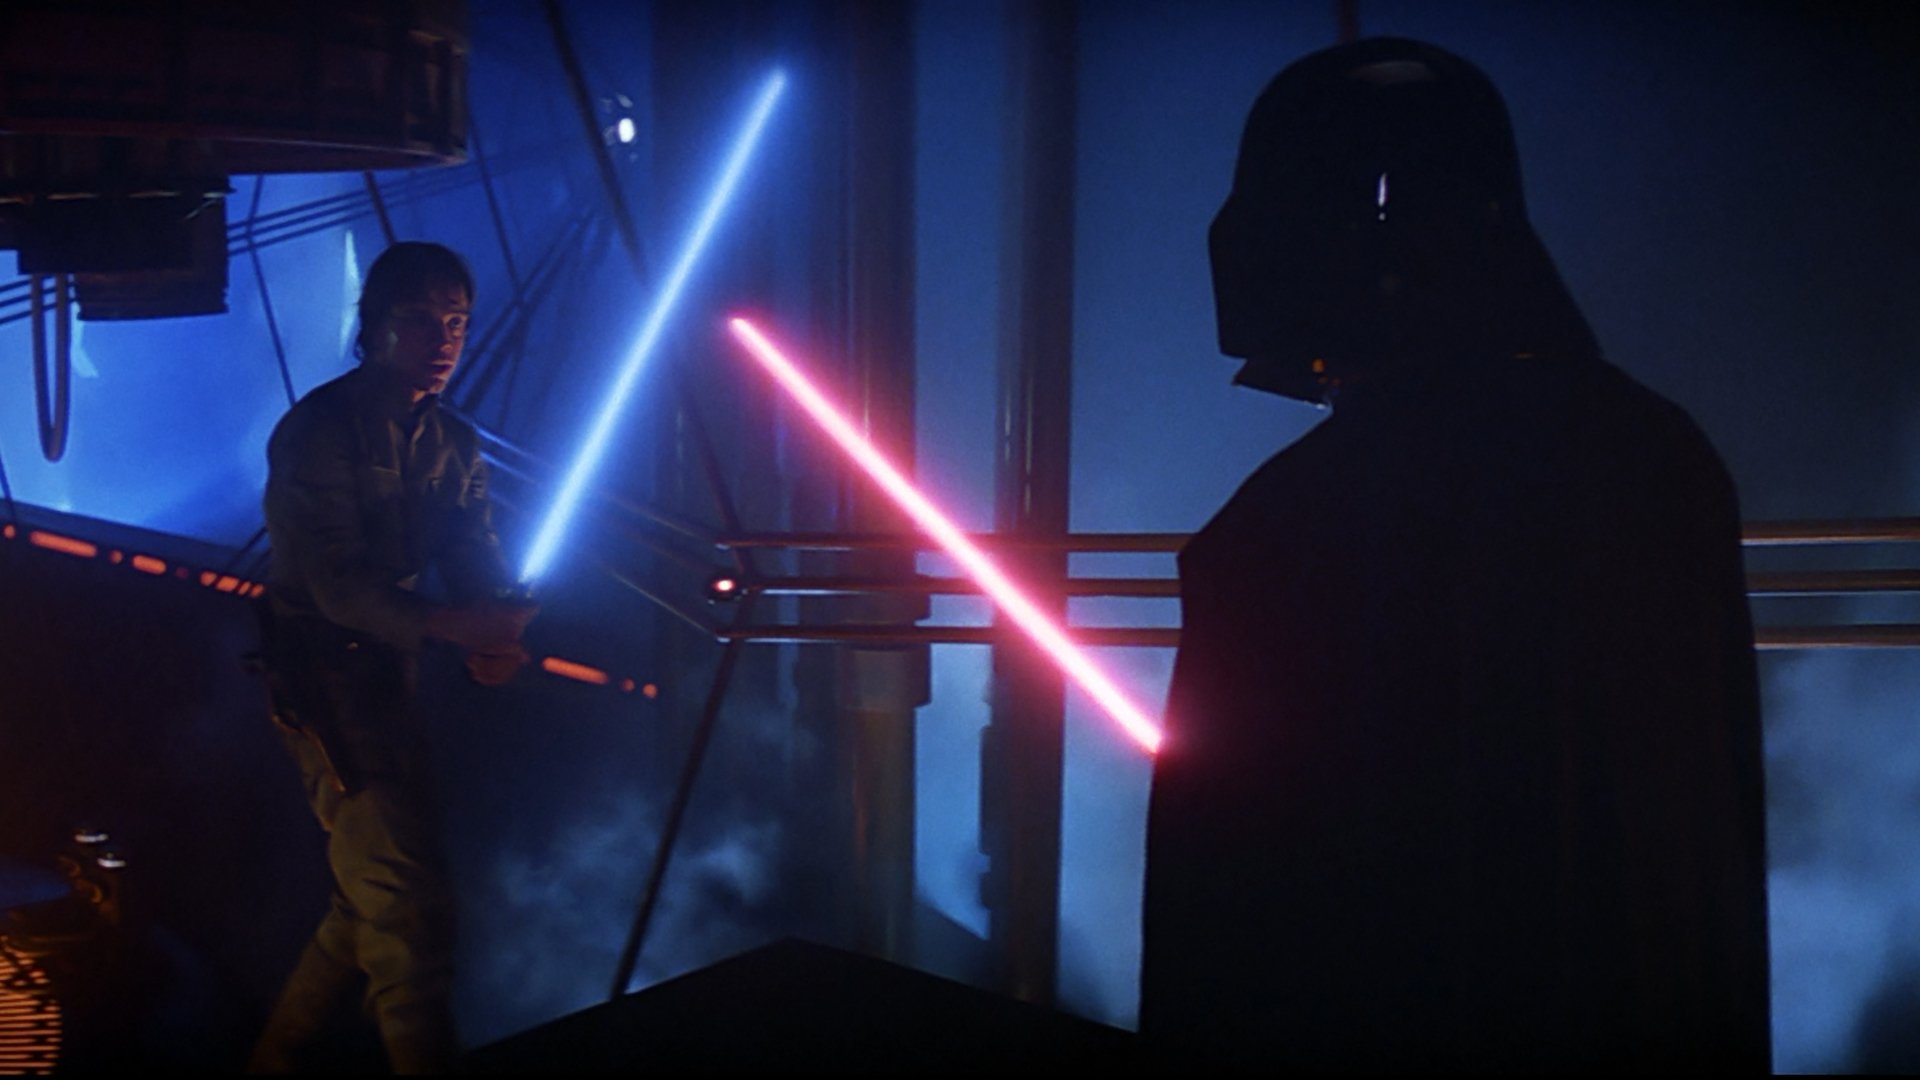 Movie - Star Wars Episode V: The Empire Strikes Back  Darth Vader Luke Skywalker Lightsaber Wallpaper